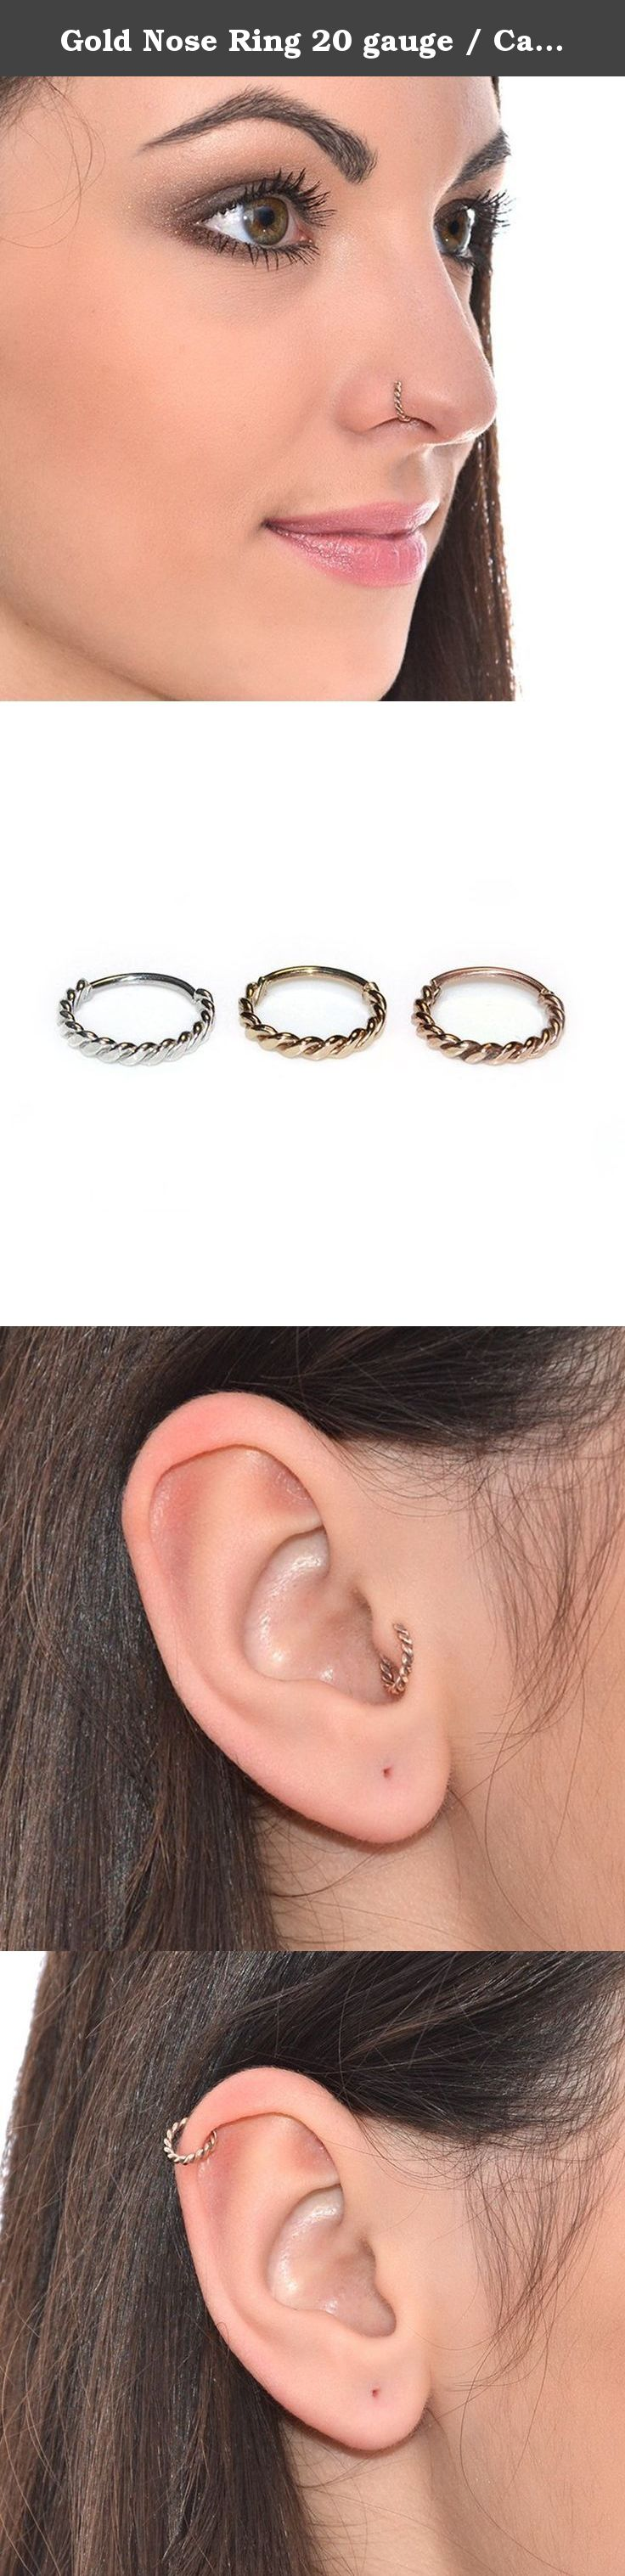 What is body piercing  Gold Nose Ring  gauge  Cartilage Earring Septum Piercing